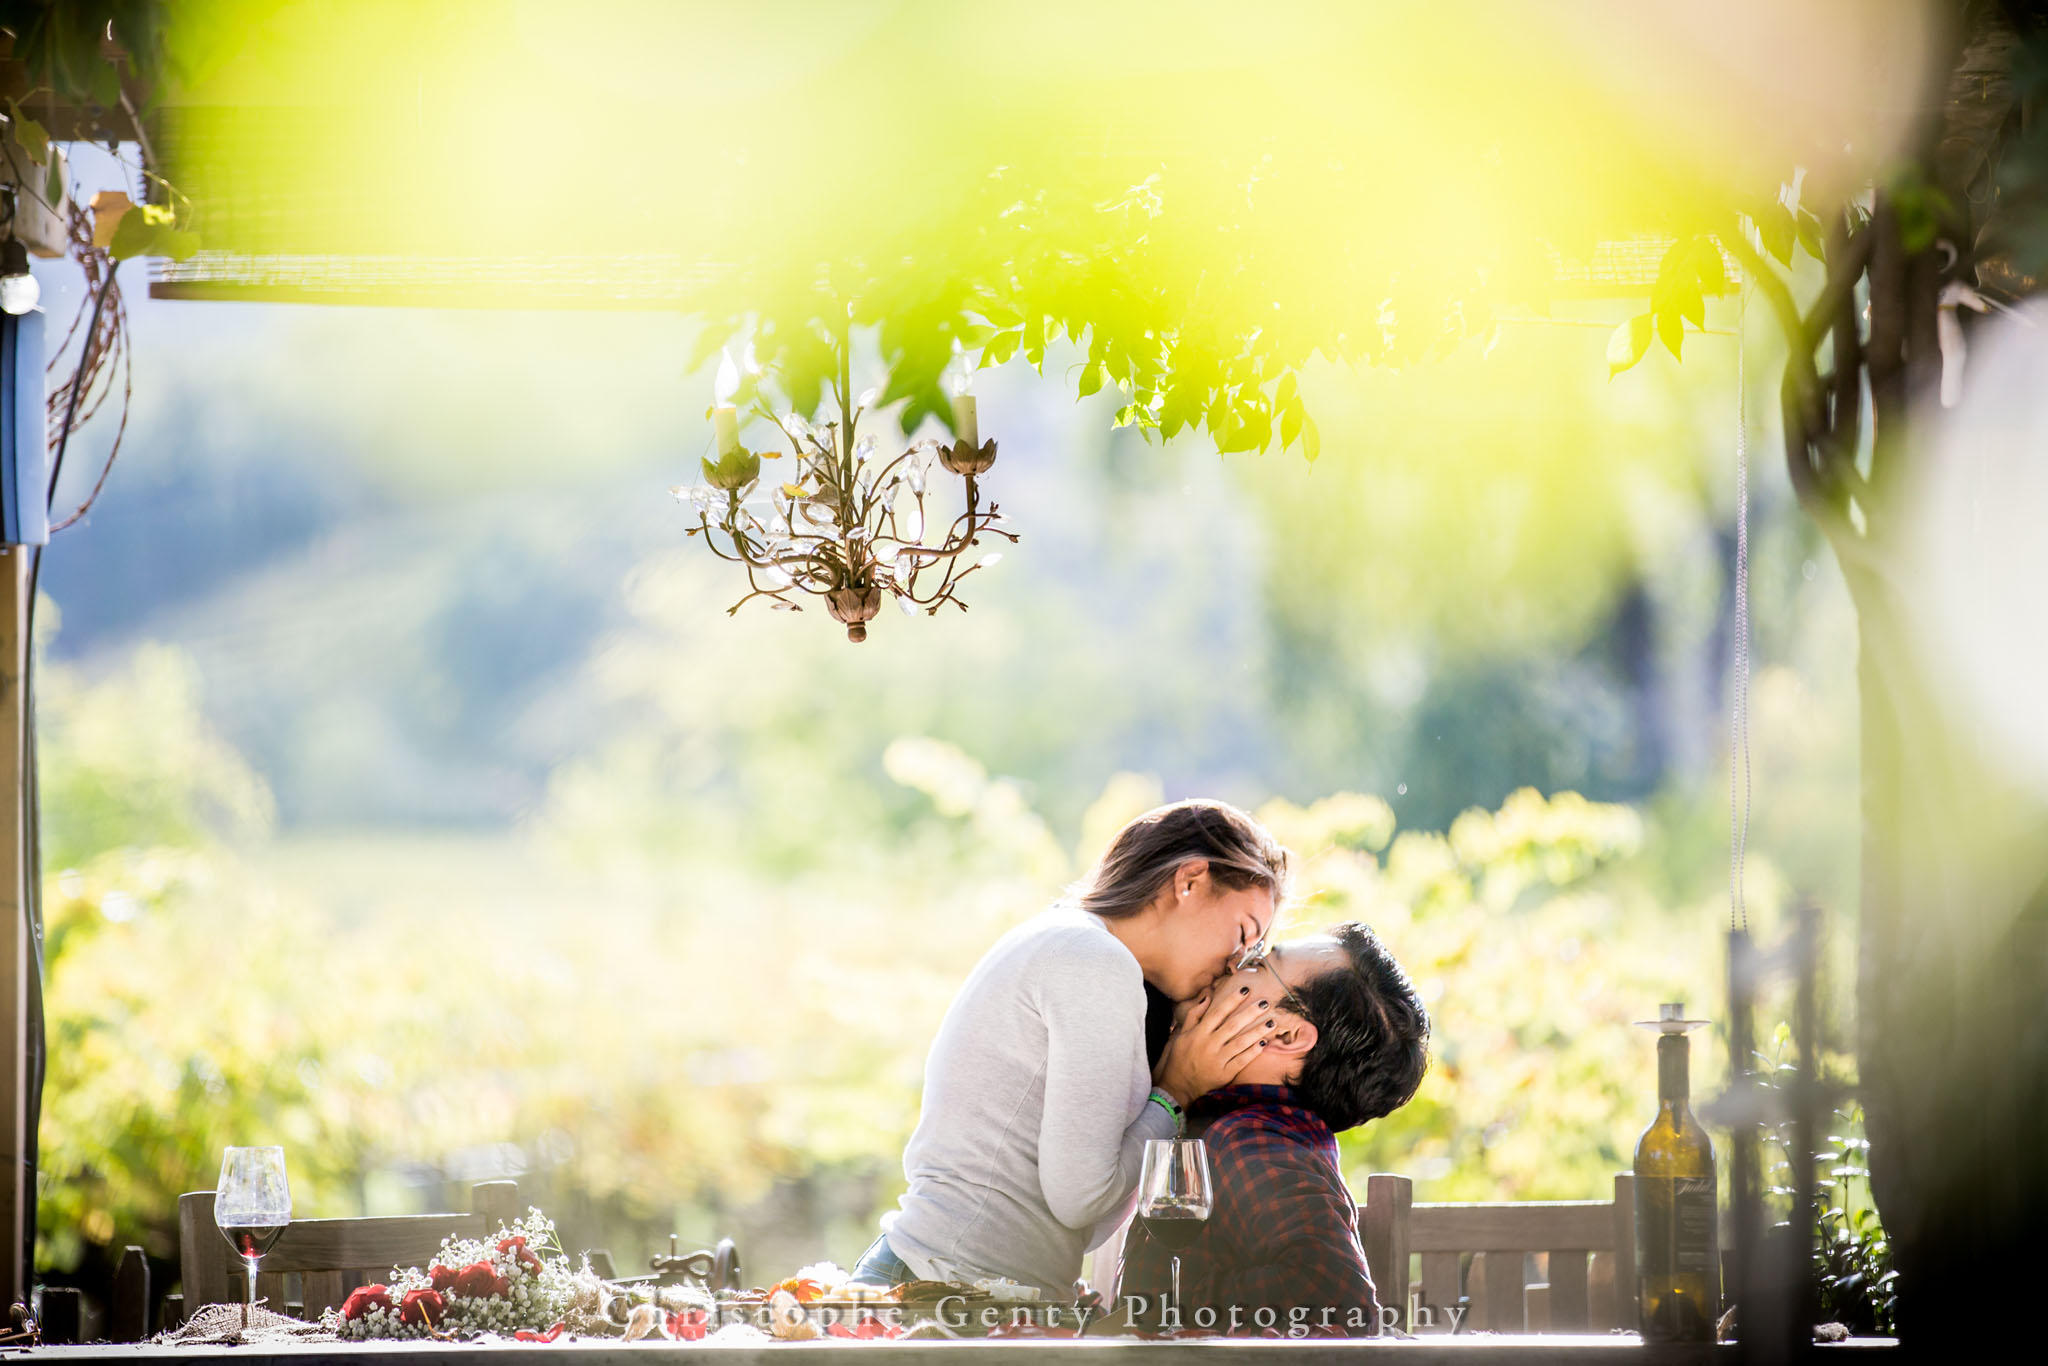 TudalWinery-Marriage-Proposal-Photography-112